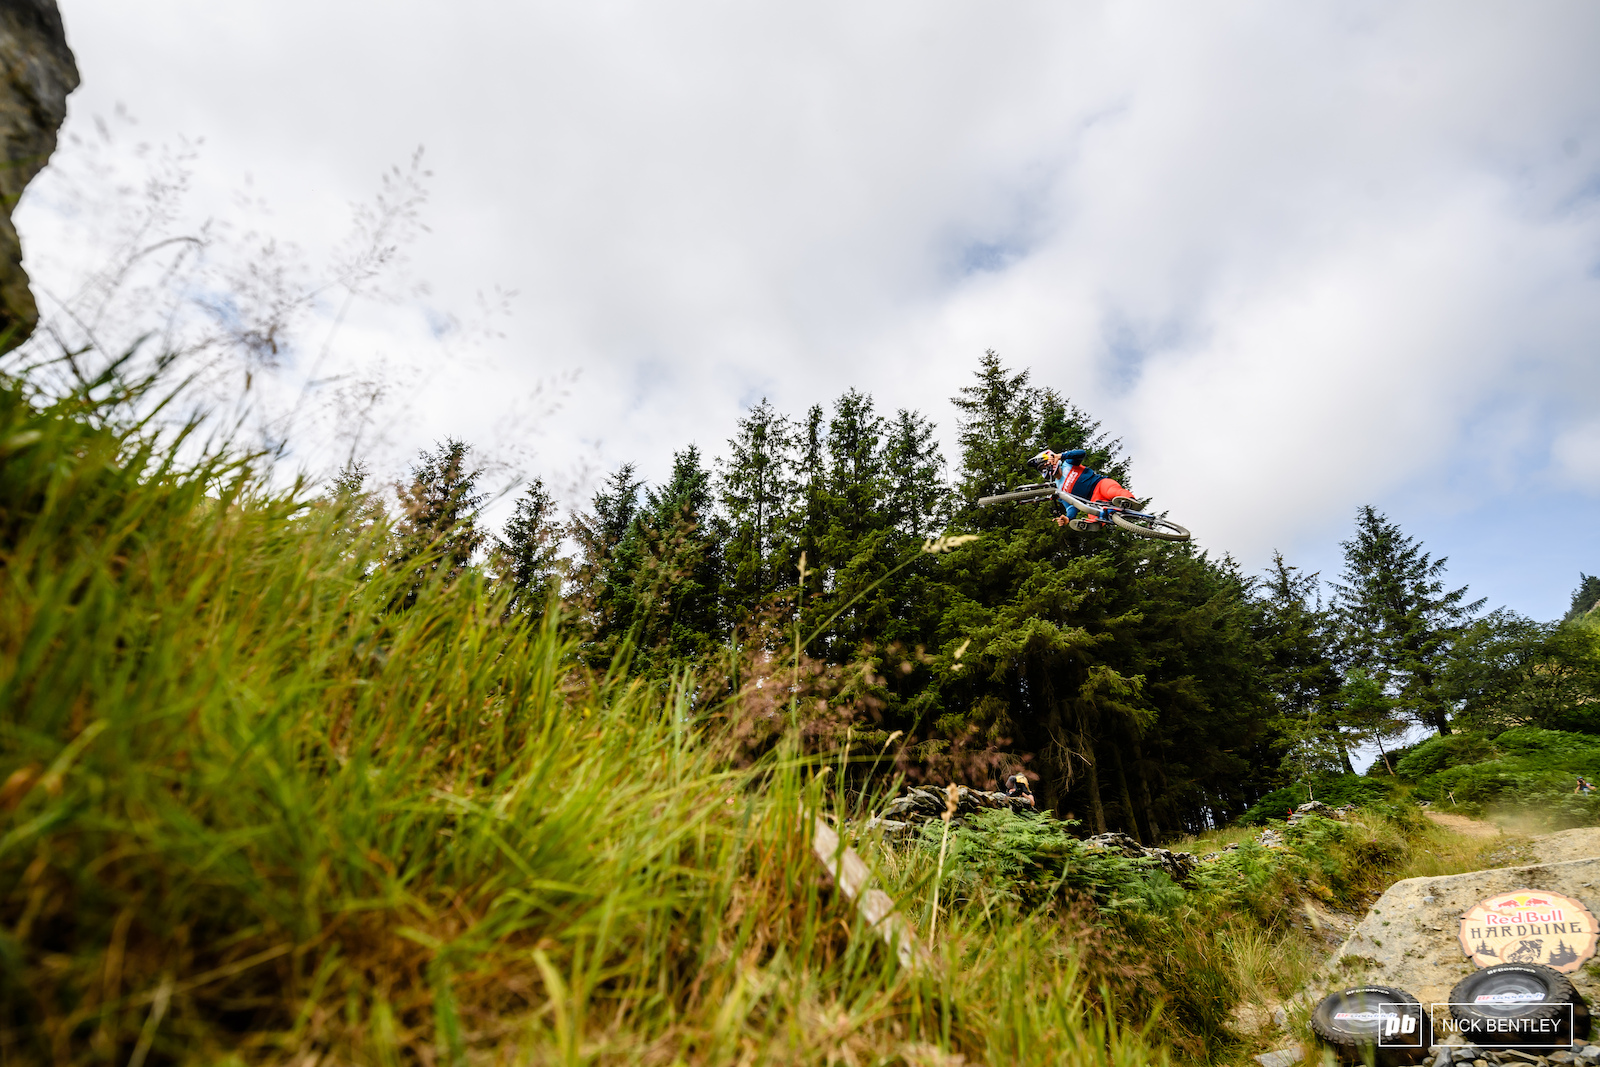 Kade Edwards is never shy on the jumps